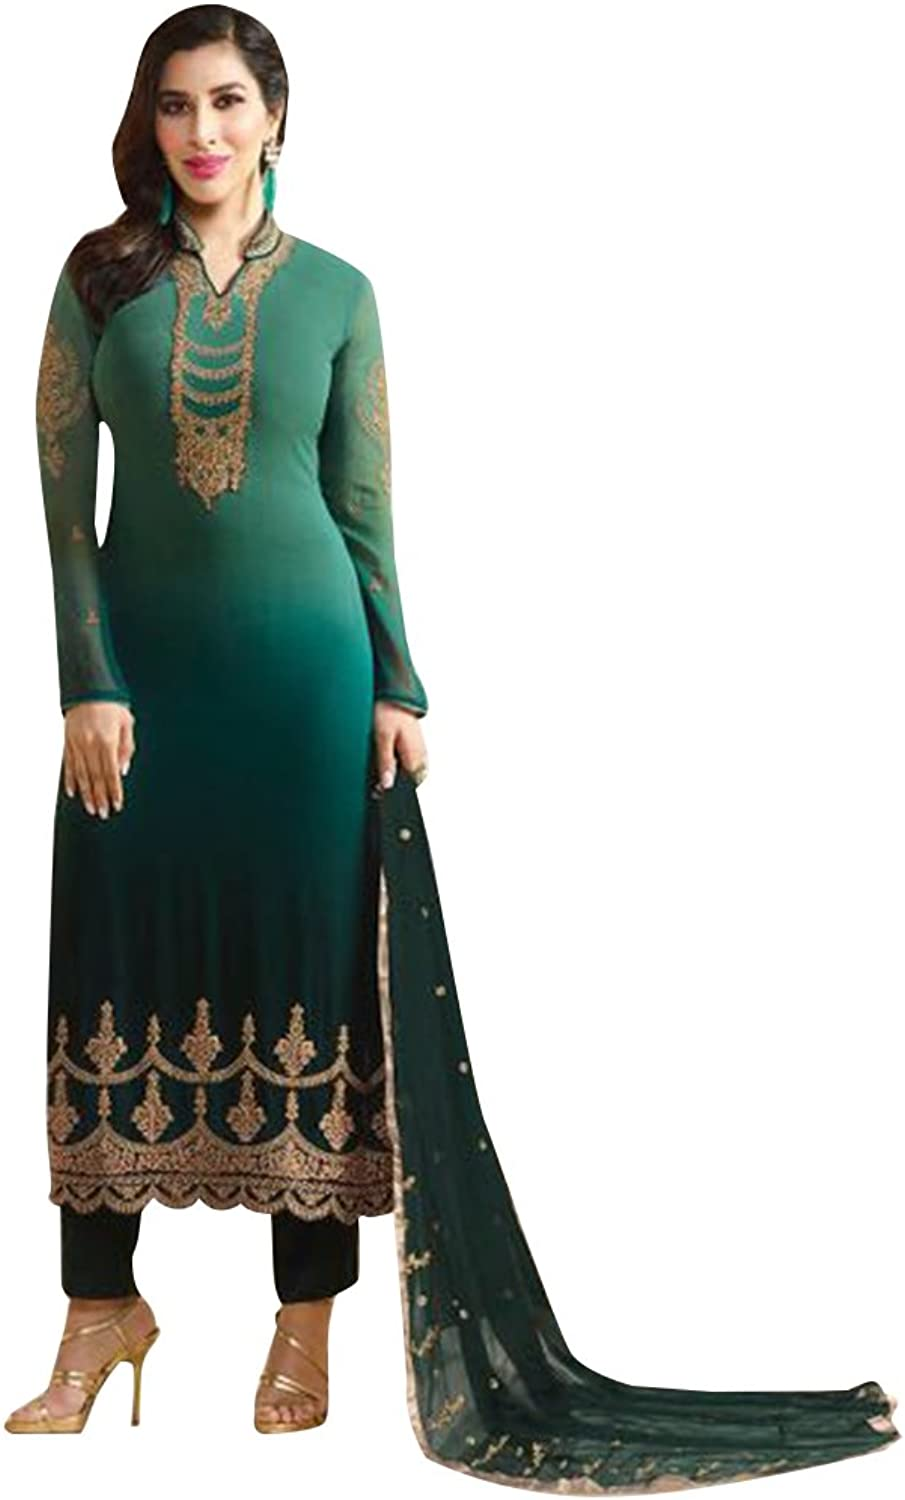 Punjabi Bollywood Straight Dresses for women Salwar Kameez Ceremony Wedding 754 10